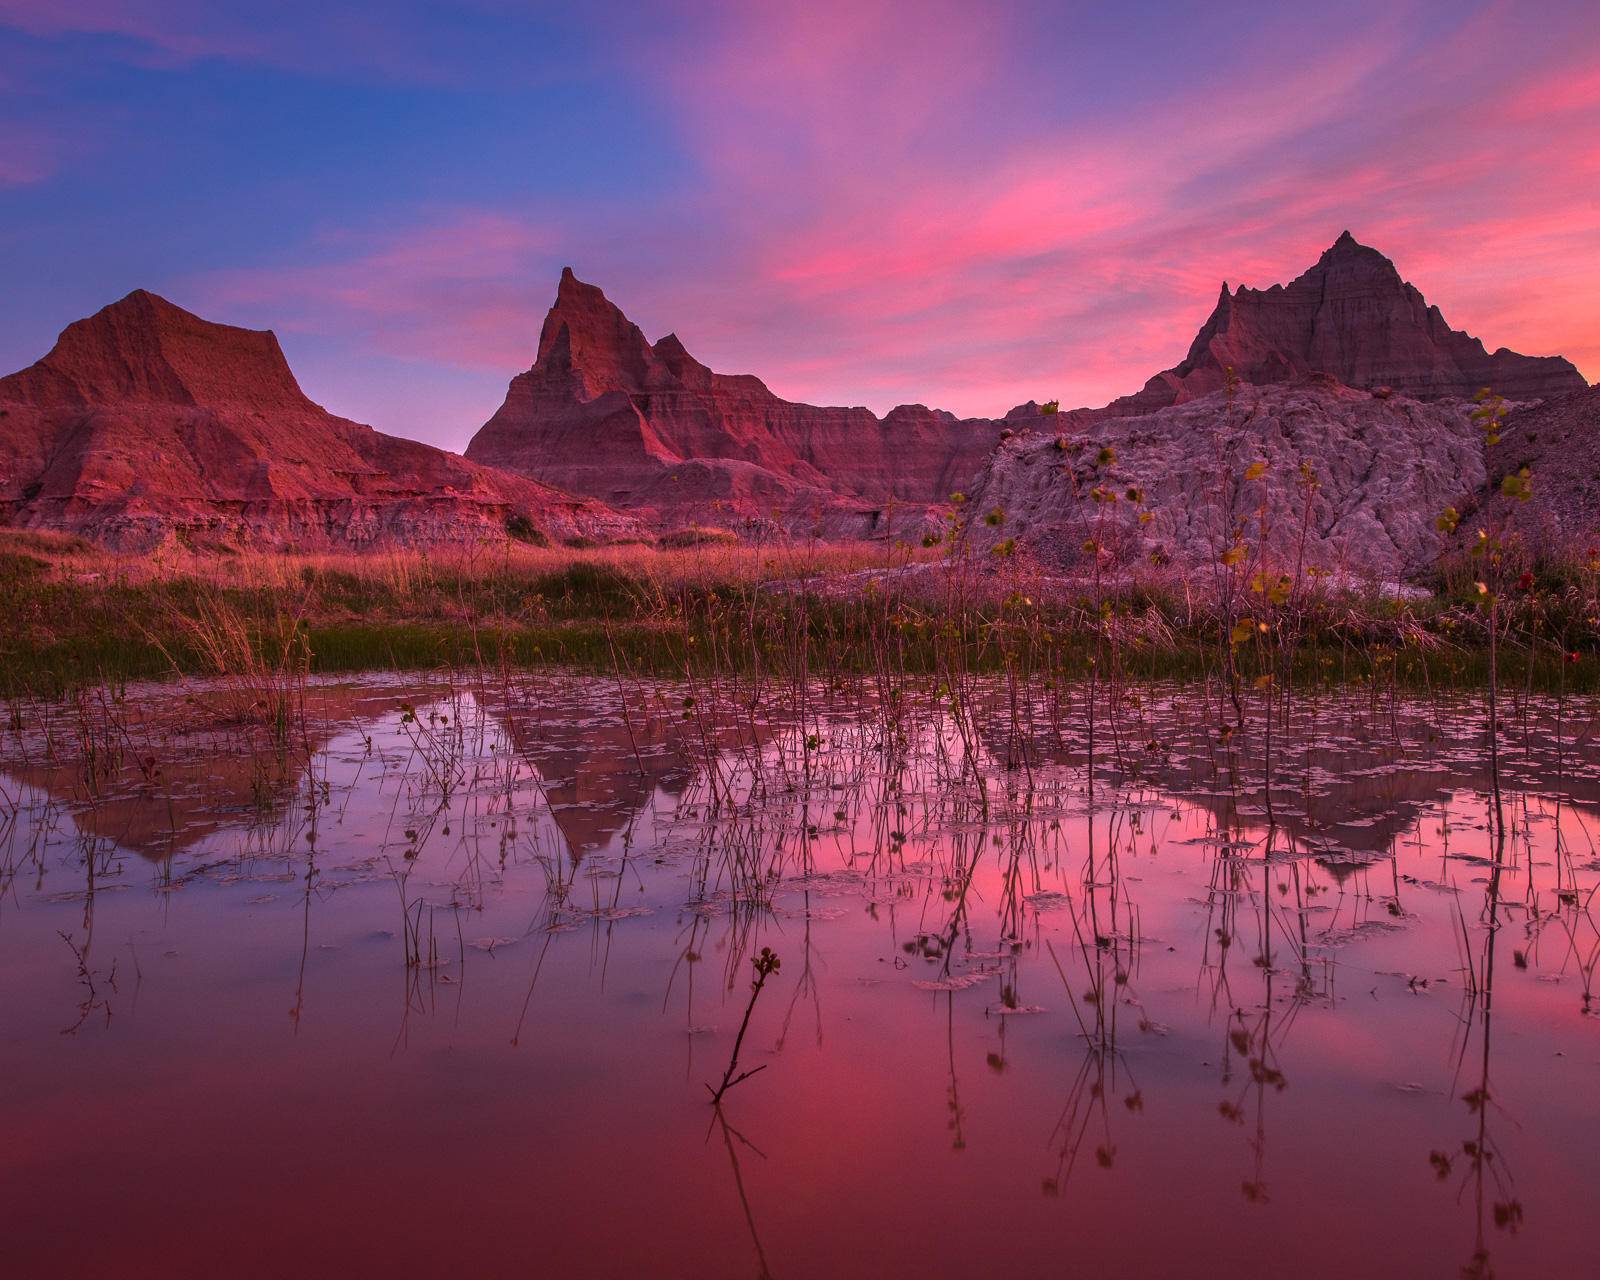 Summer rains bring pools of water to the prairie and allowed me to capture this stunning sunrise with the pinacles and towers...